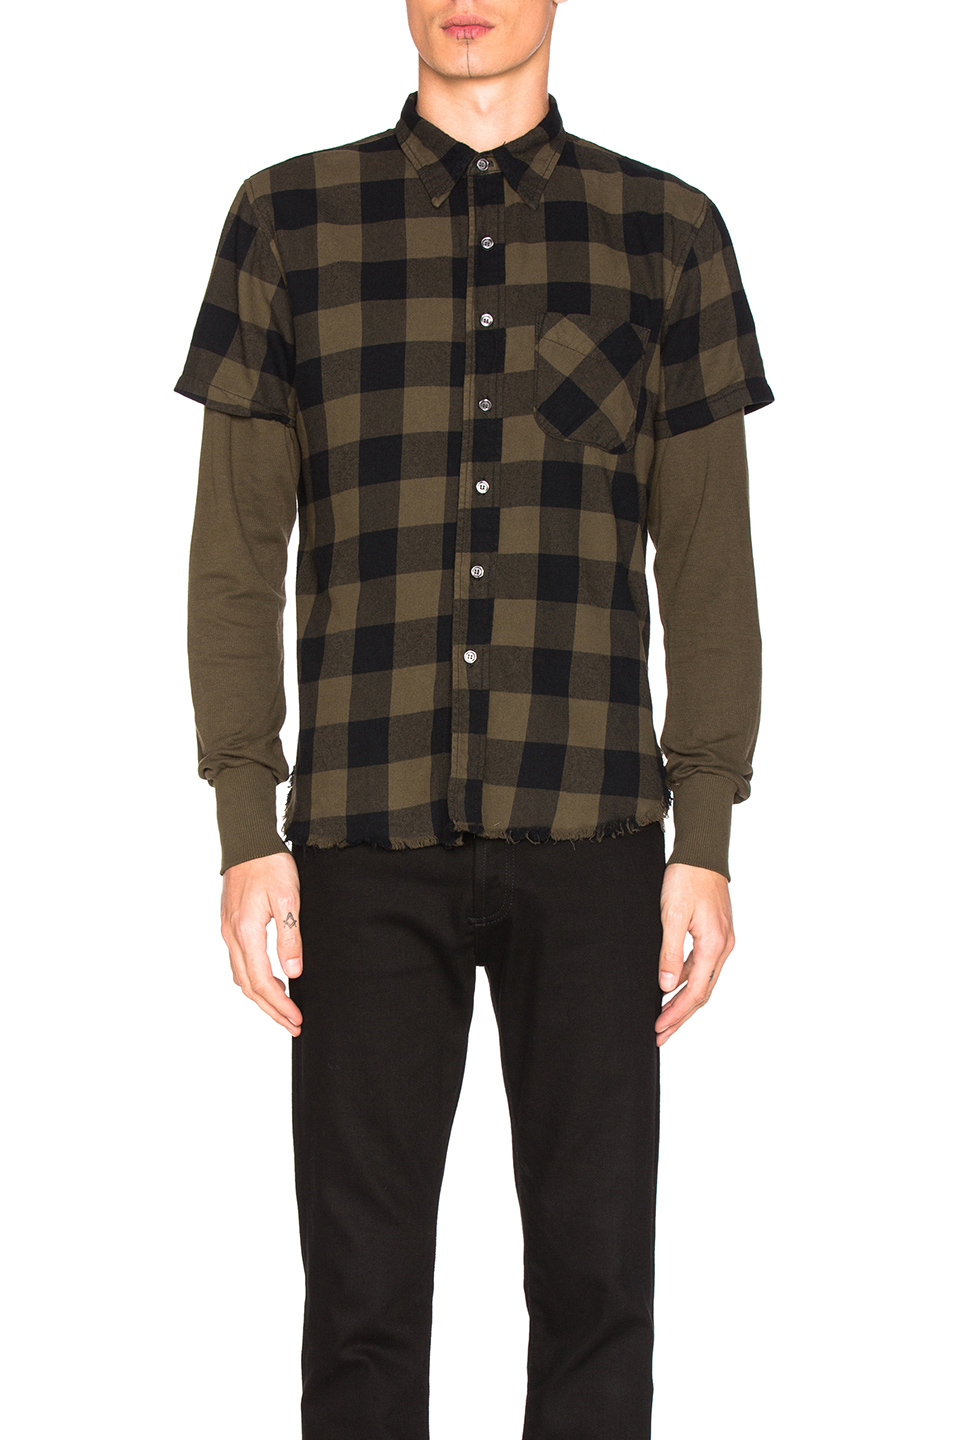 NSF Levi Shirt in Green,Checkered & Plaid